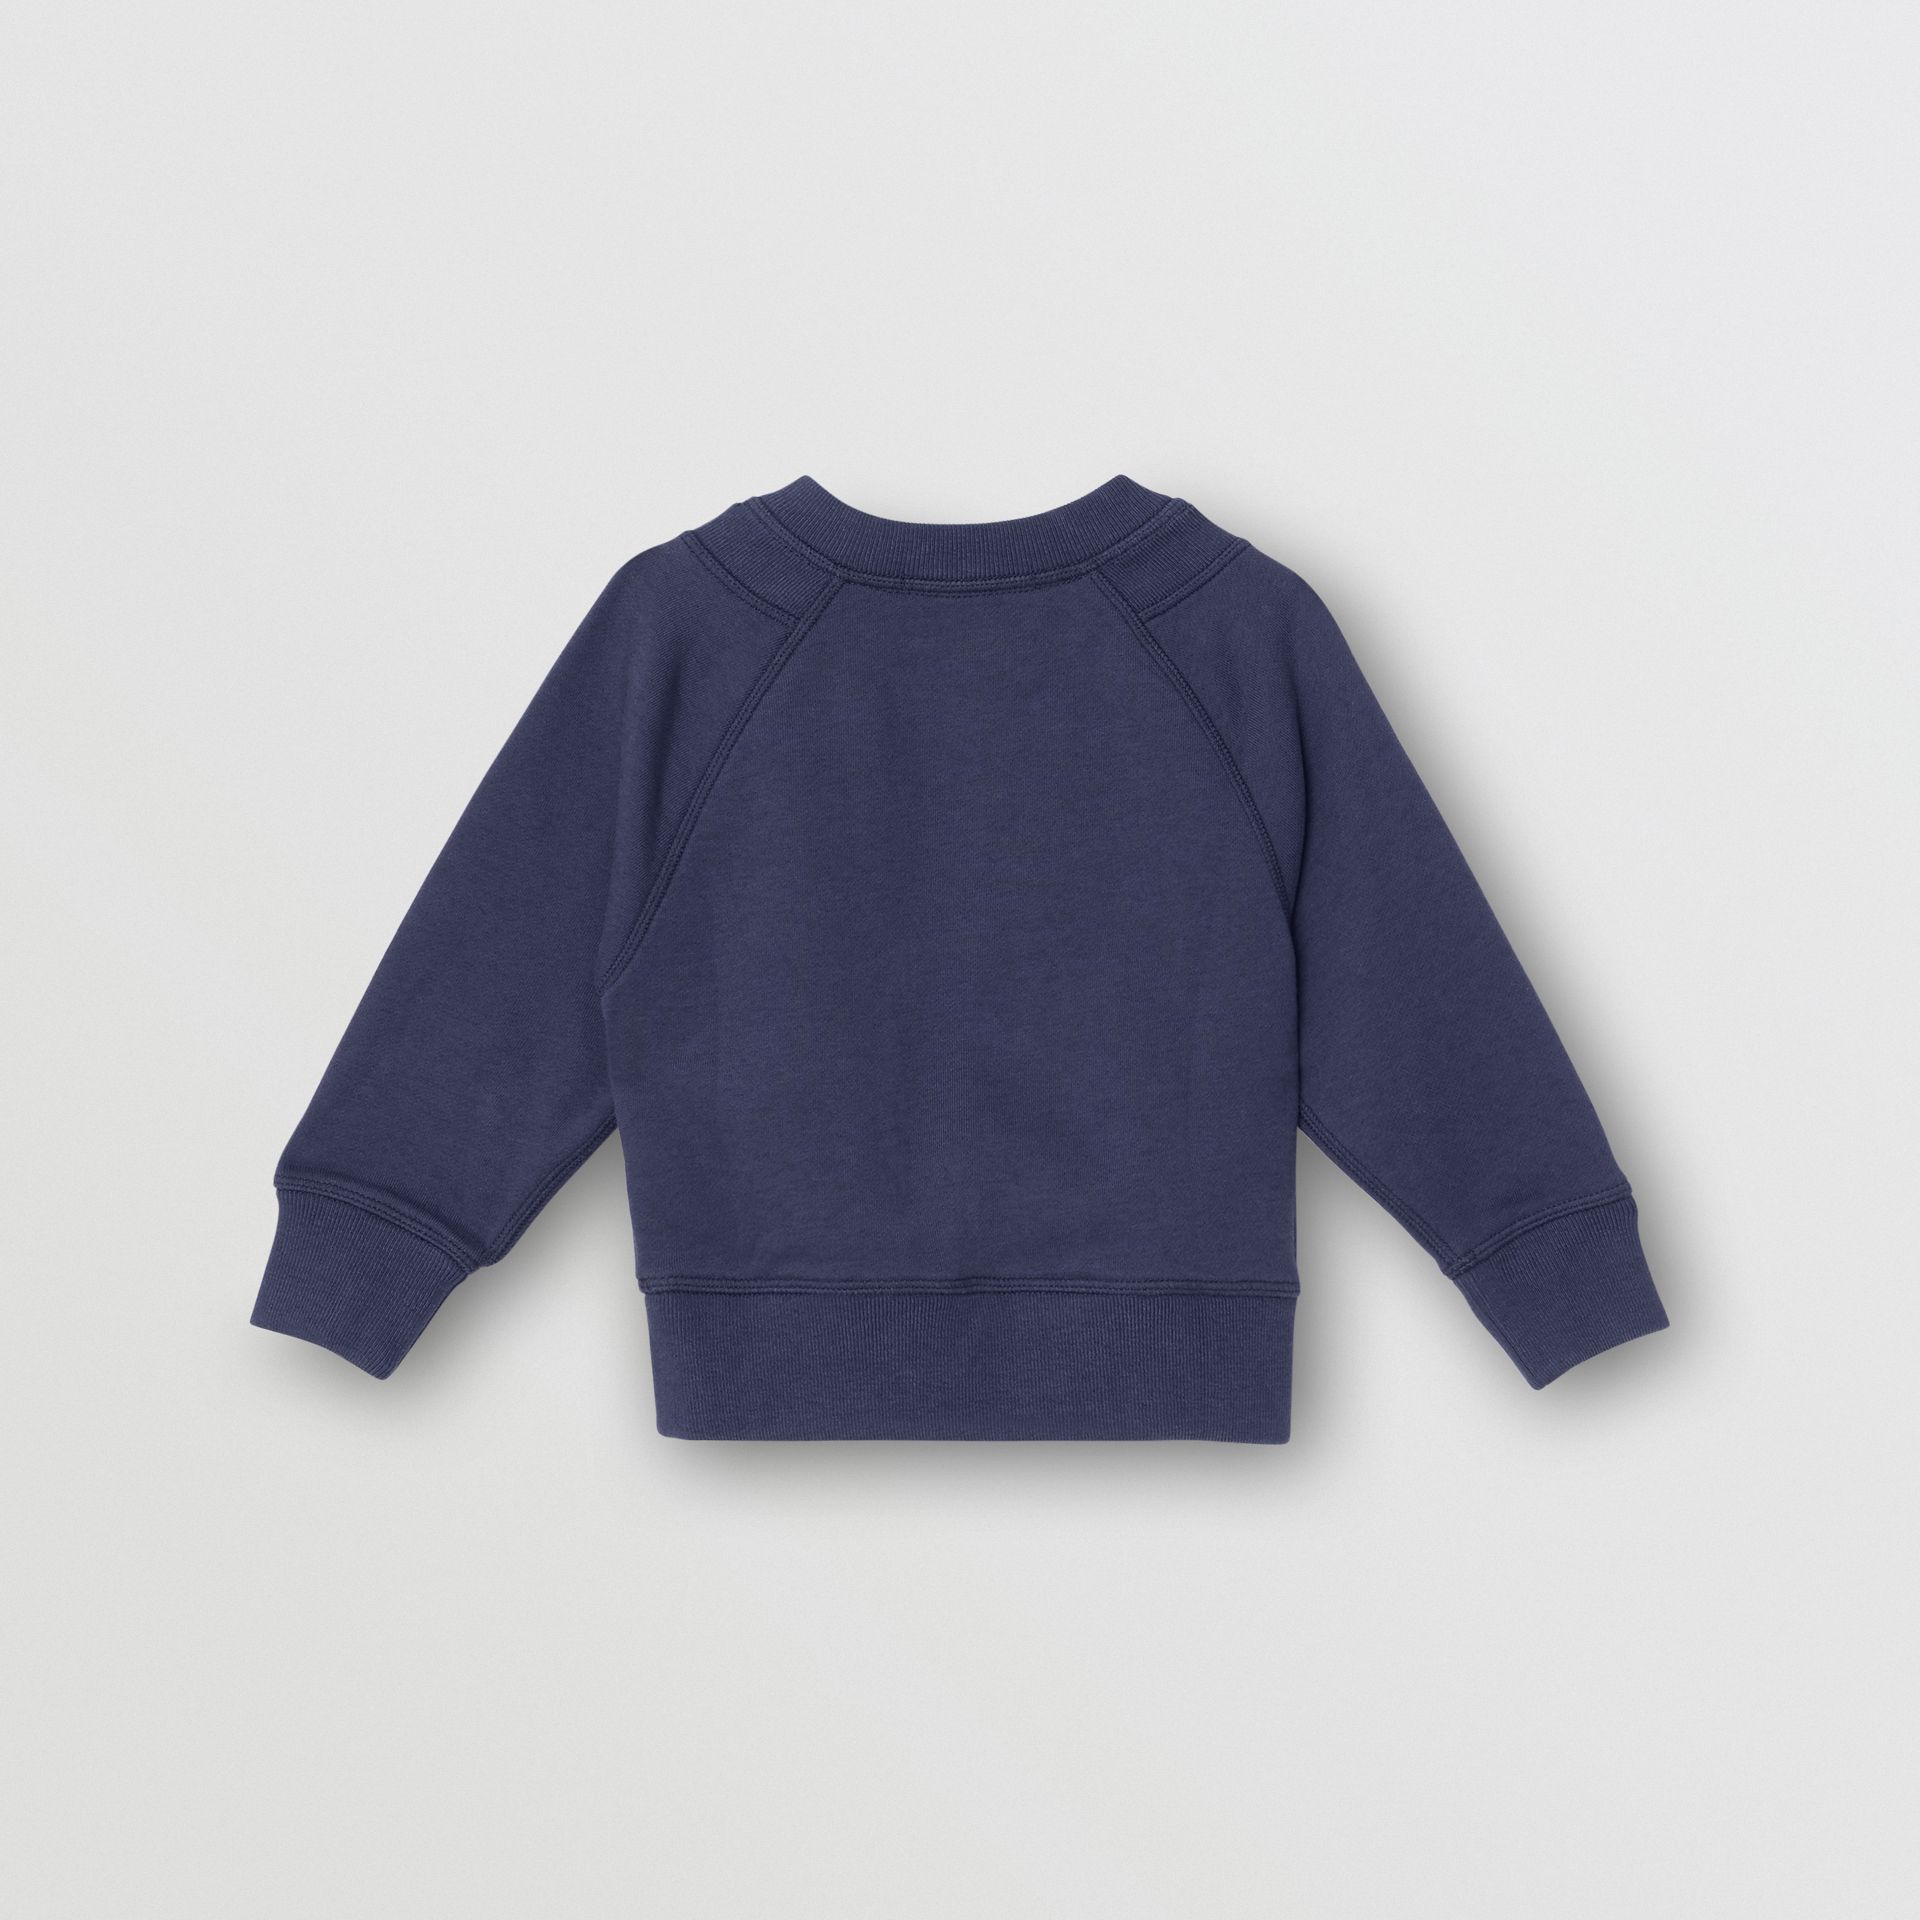 Kingdom Motif Cotton Sweatshirt in Slate Blue Melange - Children | Burberry Australia - gallery image 3